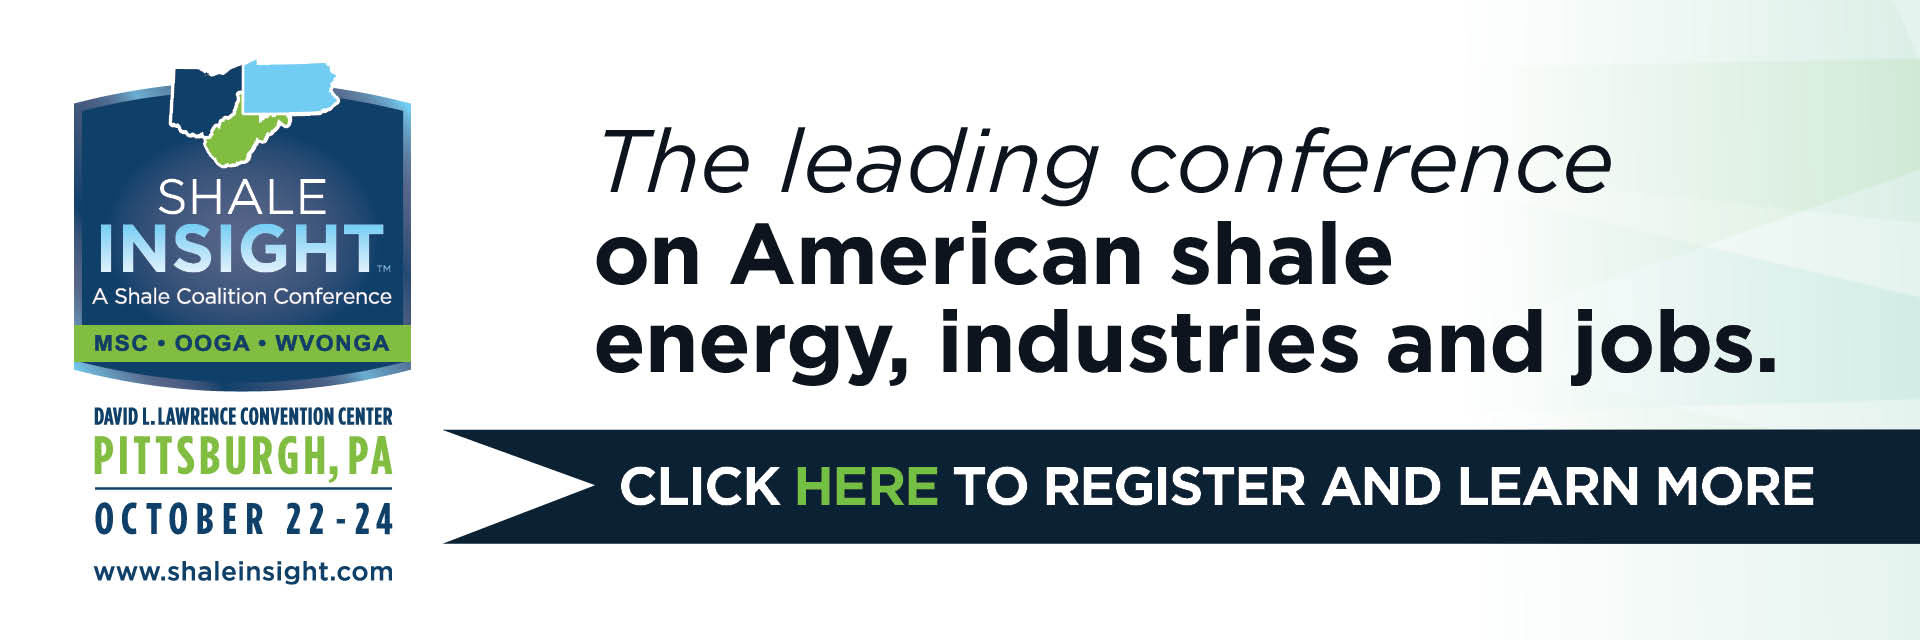 The Leading conference on American shale energy, industries and jobs.